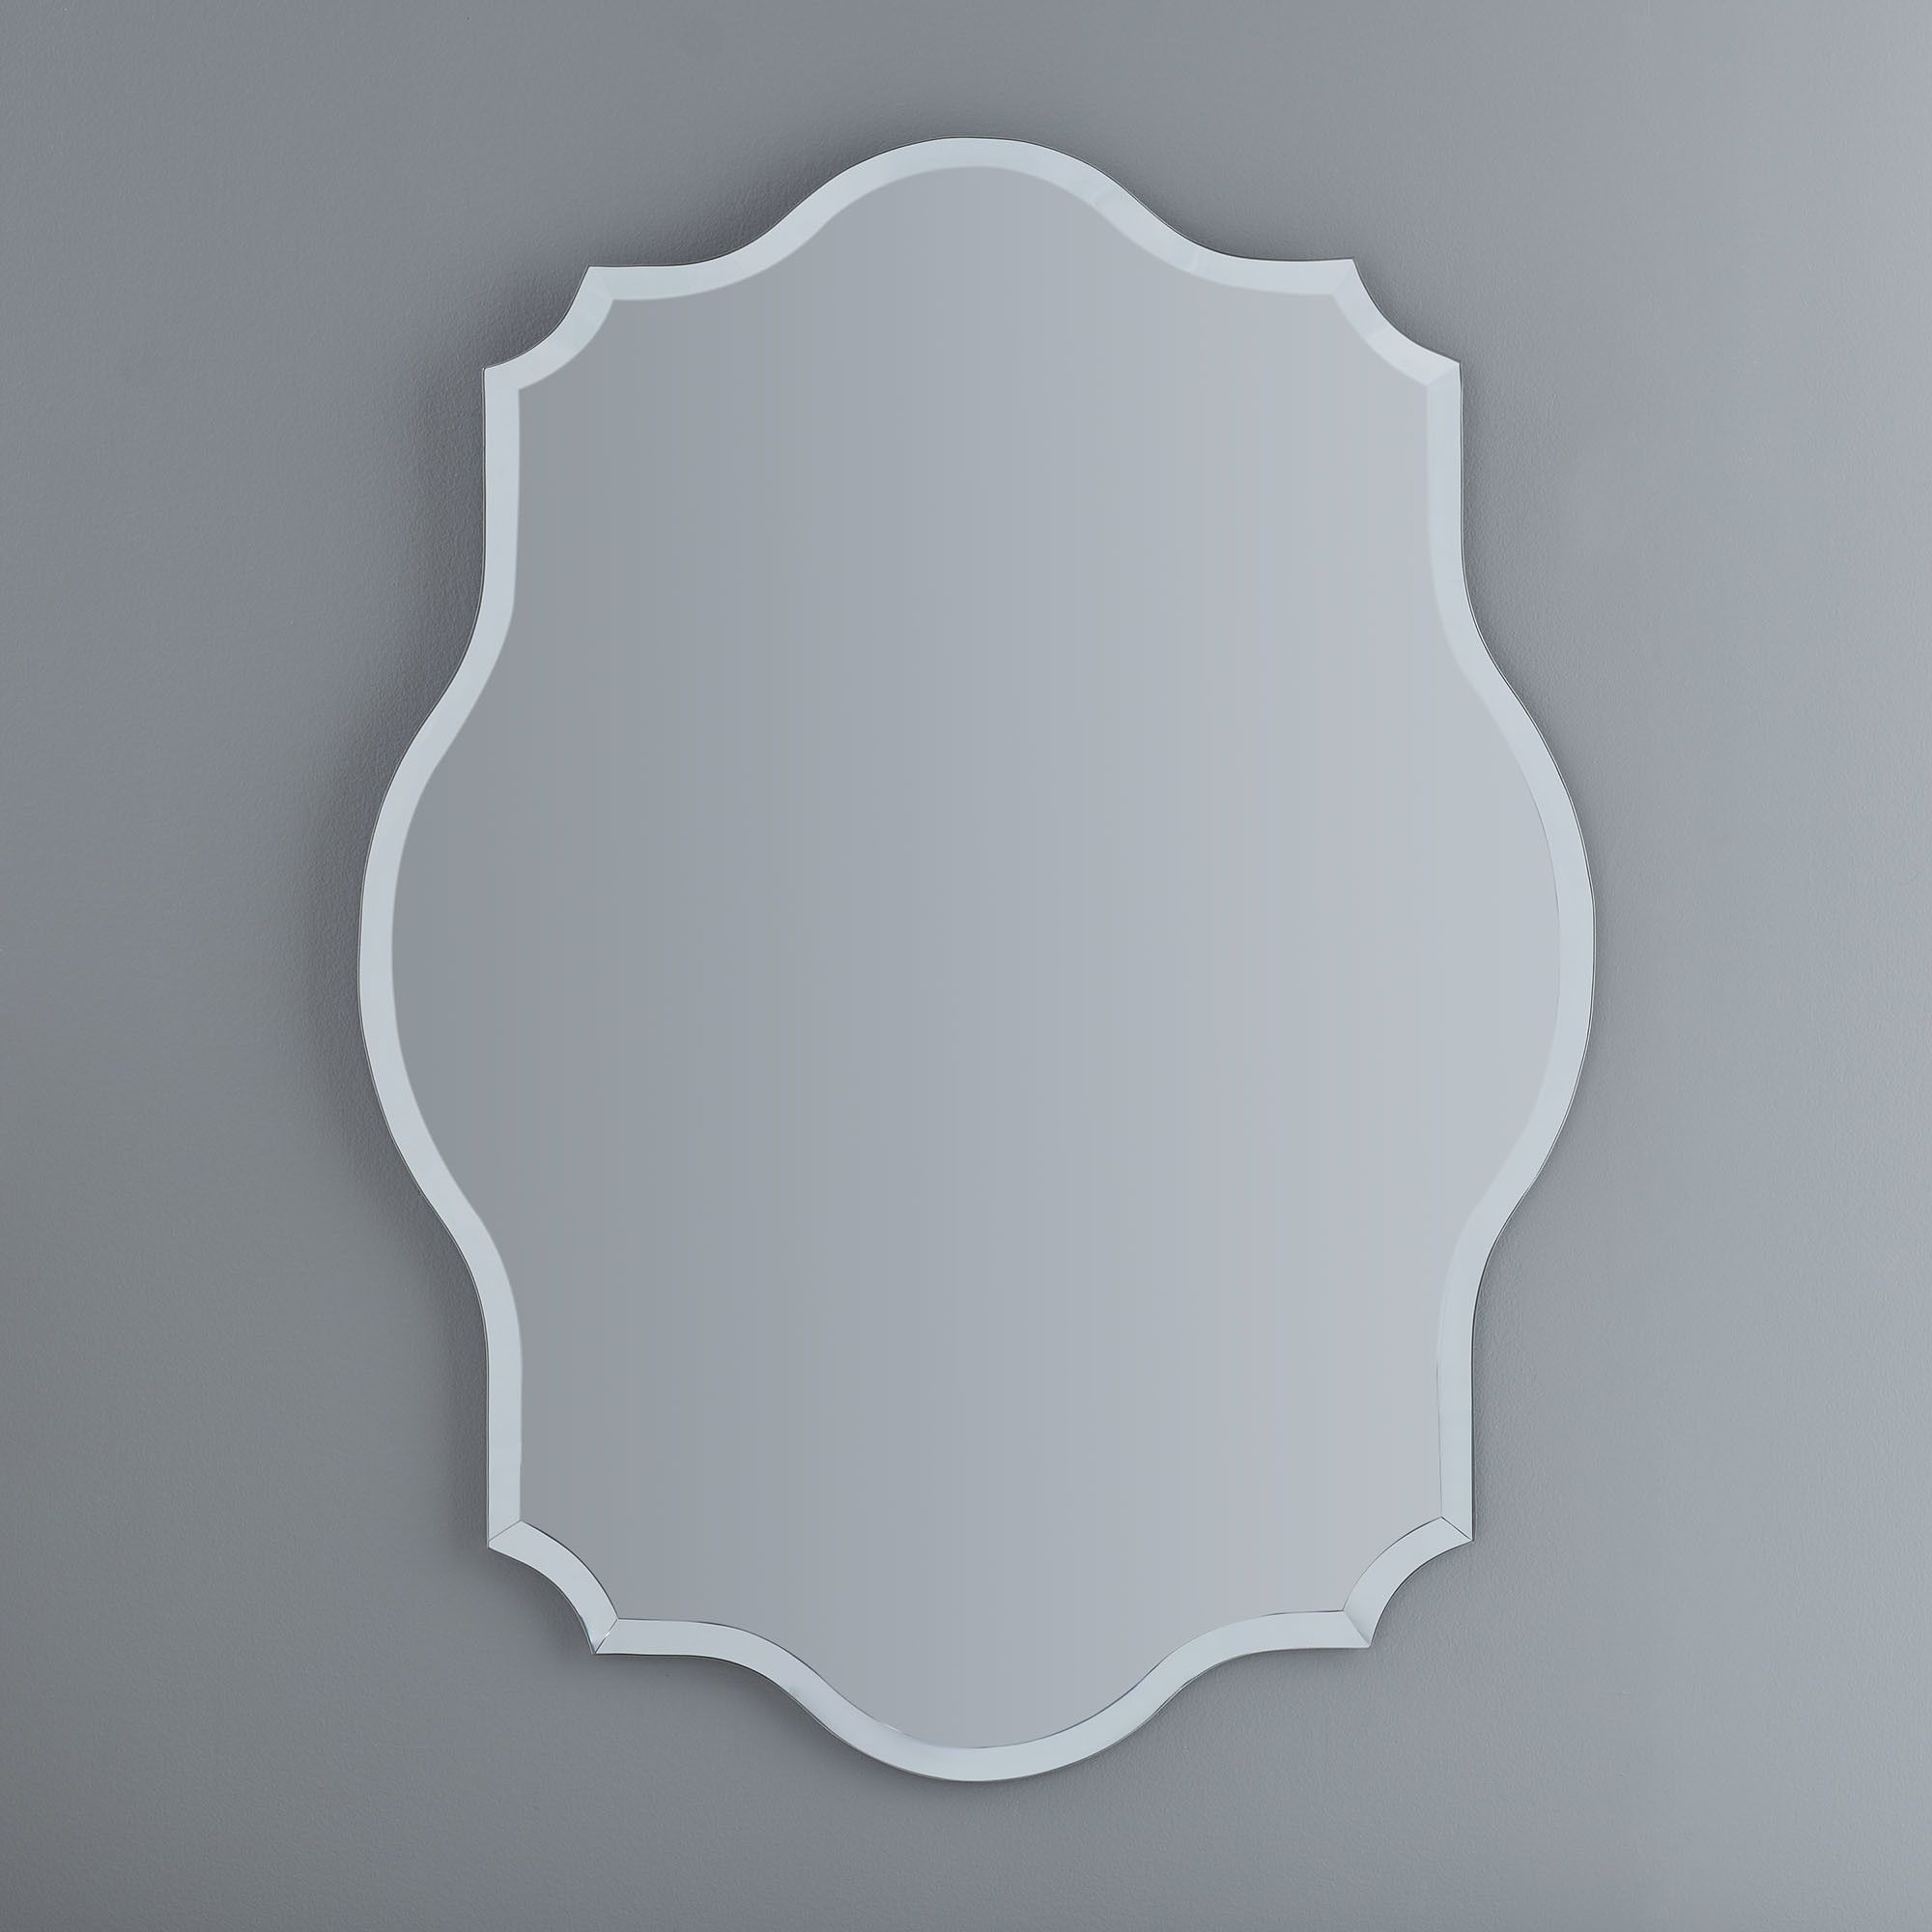 Guidinha Modern & Contemporary Accent Mirror | Products Intended For Guidinha Modern & Contemporary Accent Mirrors (View 13 of 20)